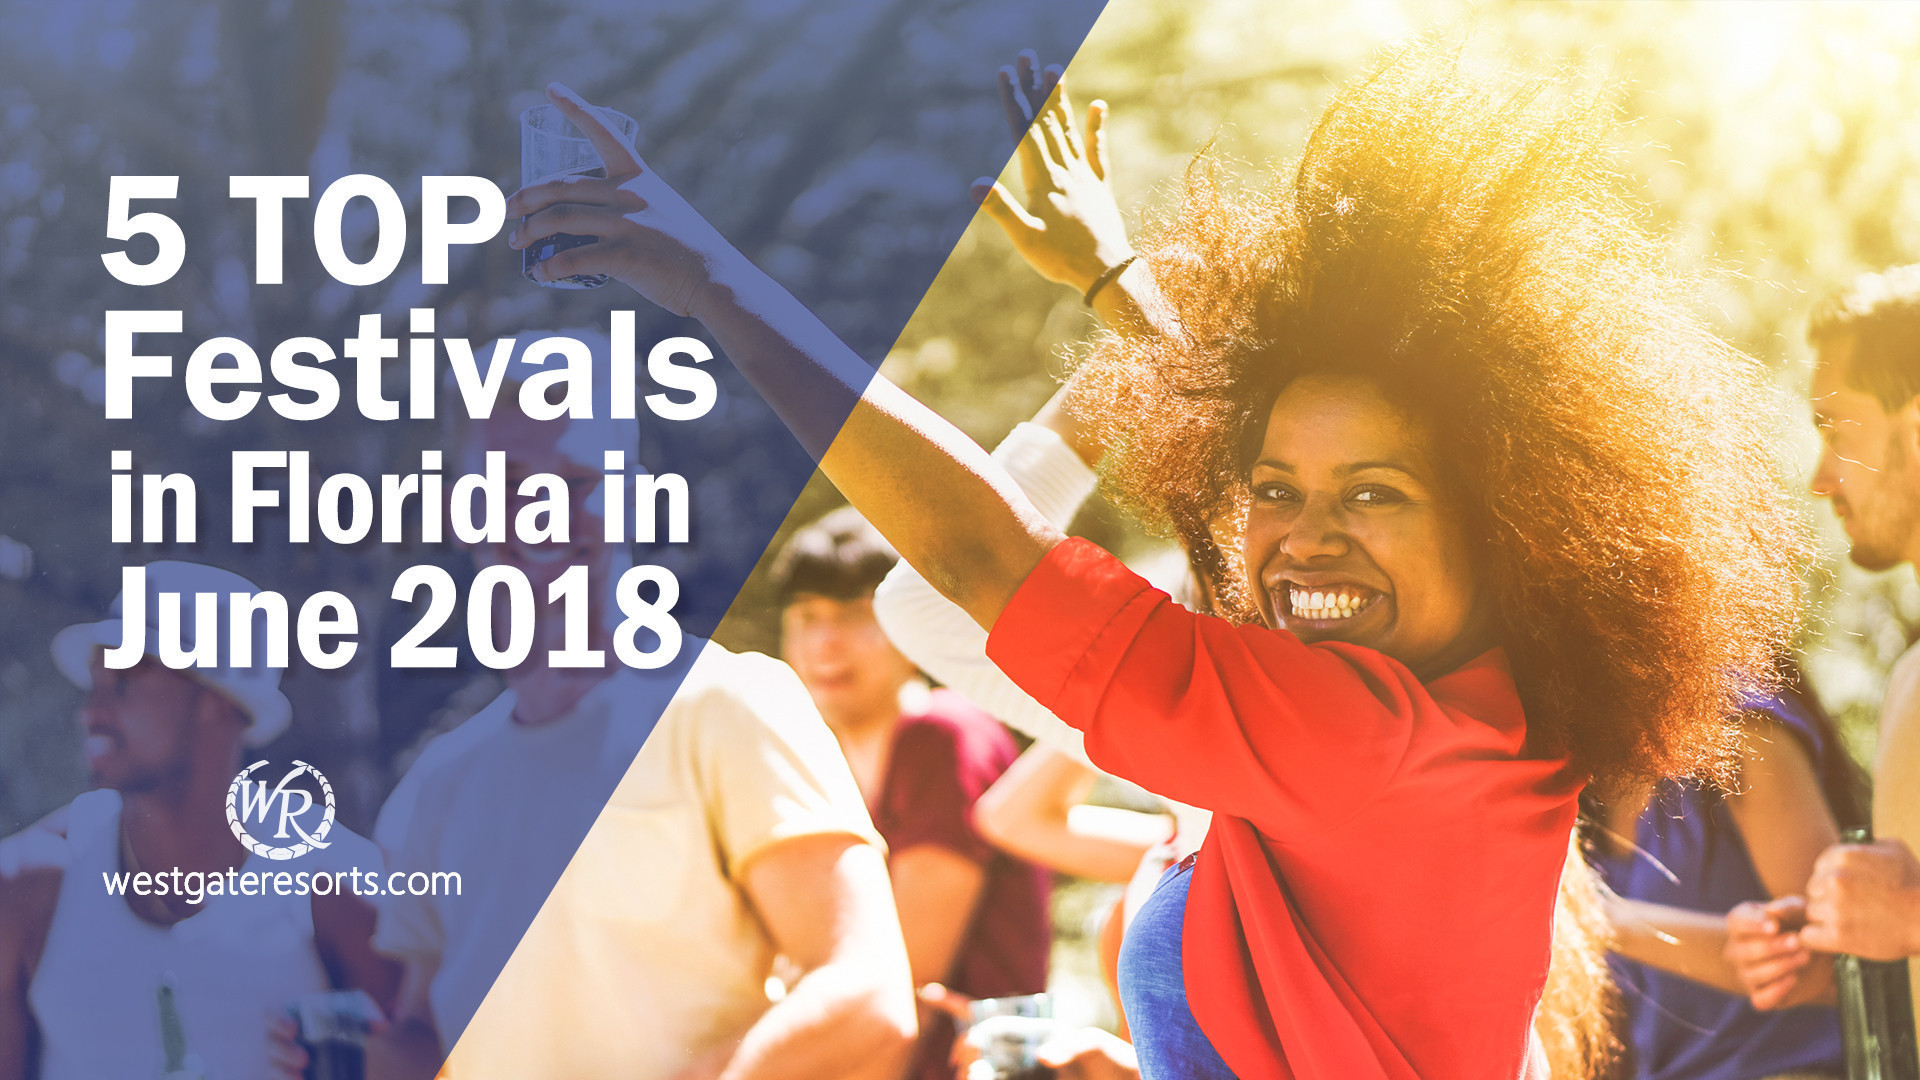 5 Top Festivals in Florida in June of 2018 | Florida Festivals | Westgate Resorts